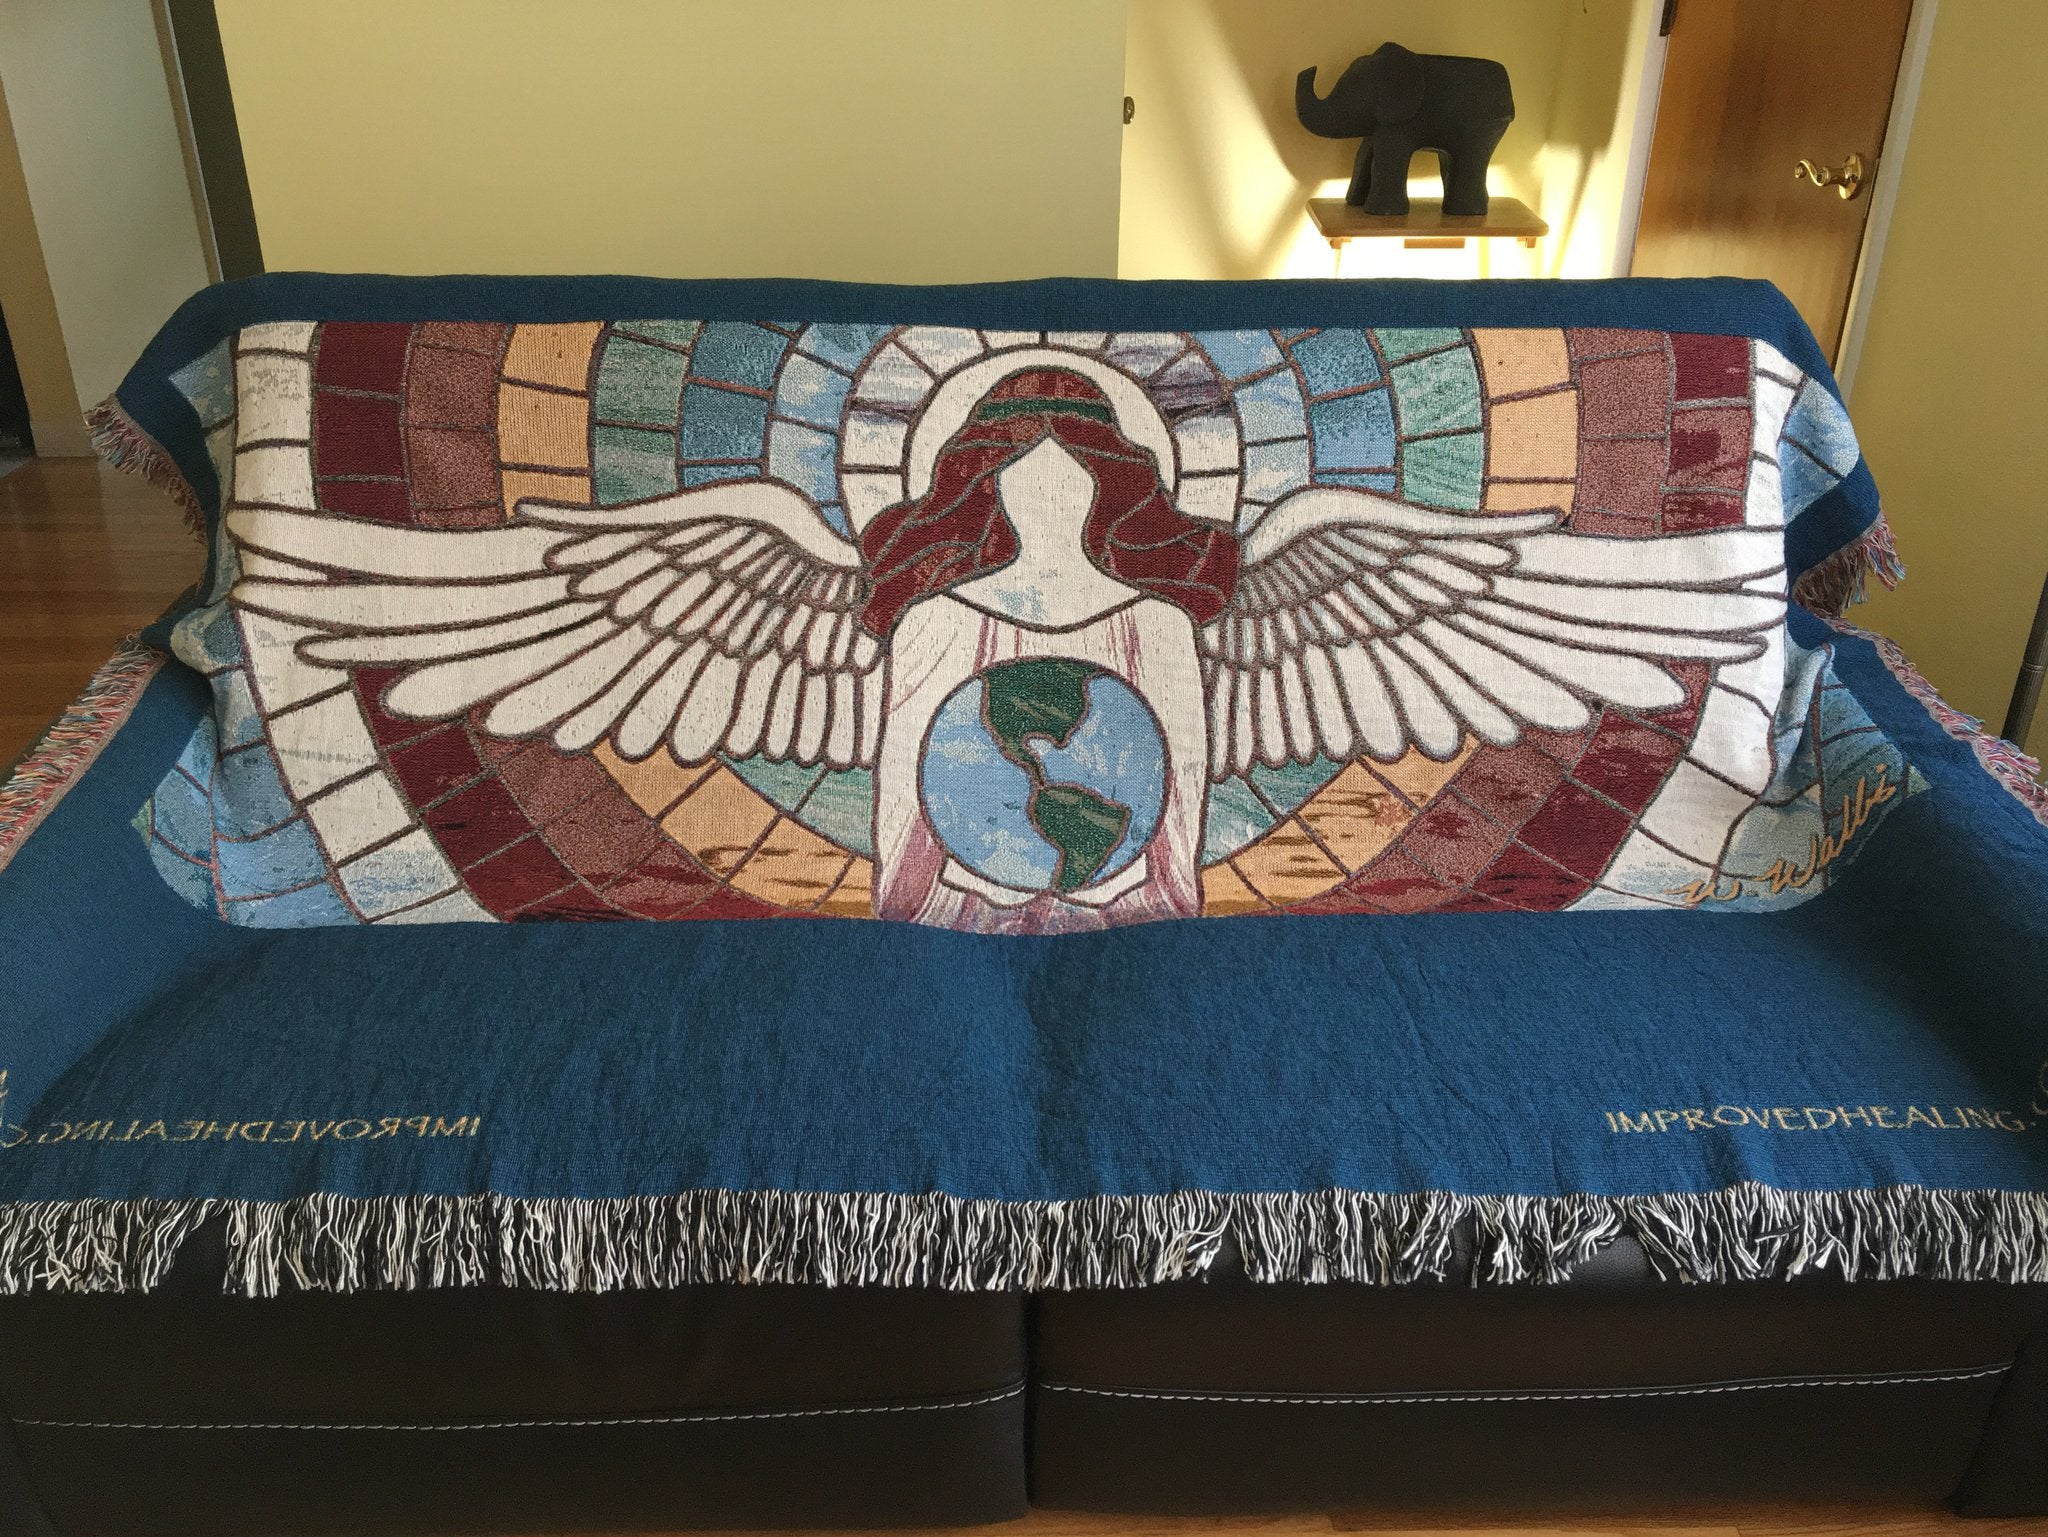 Three Queen-Size Blankets - The Healing Energy Blanket for Families